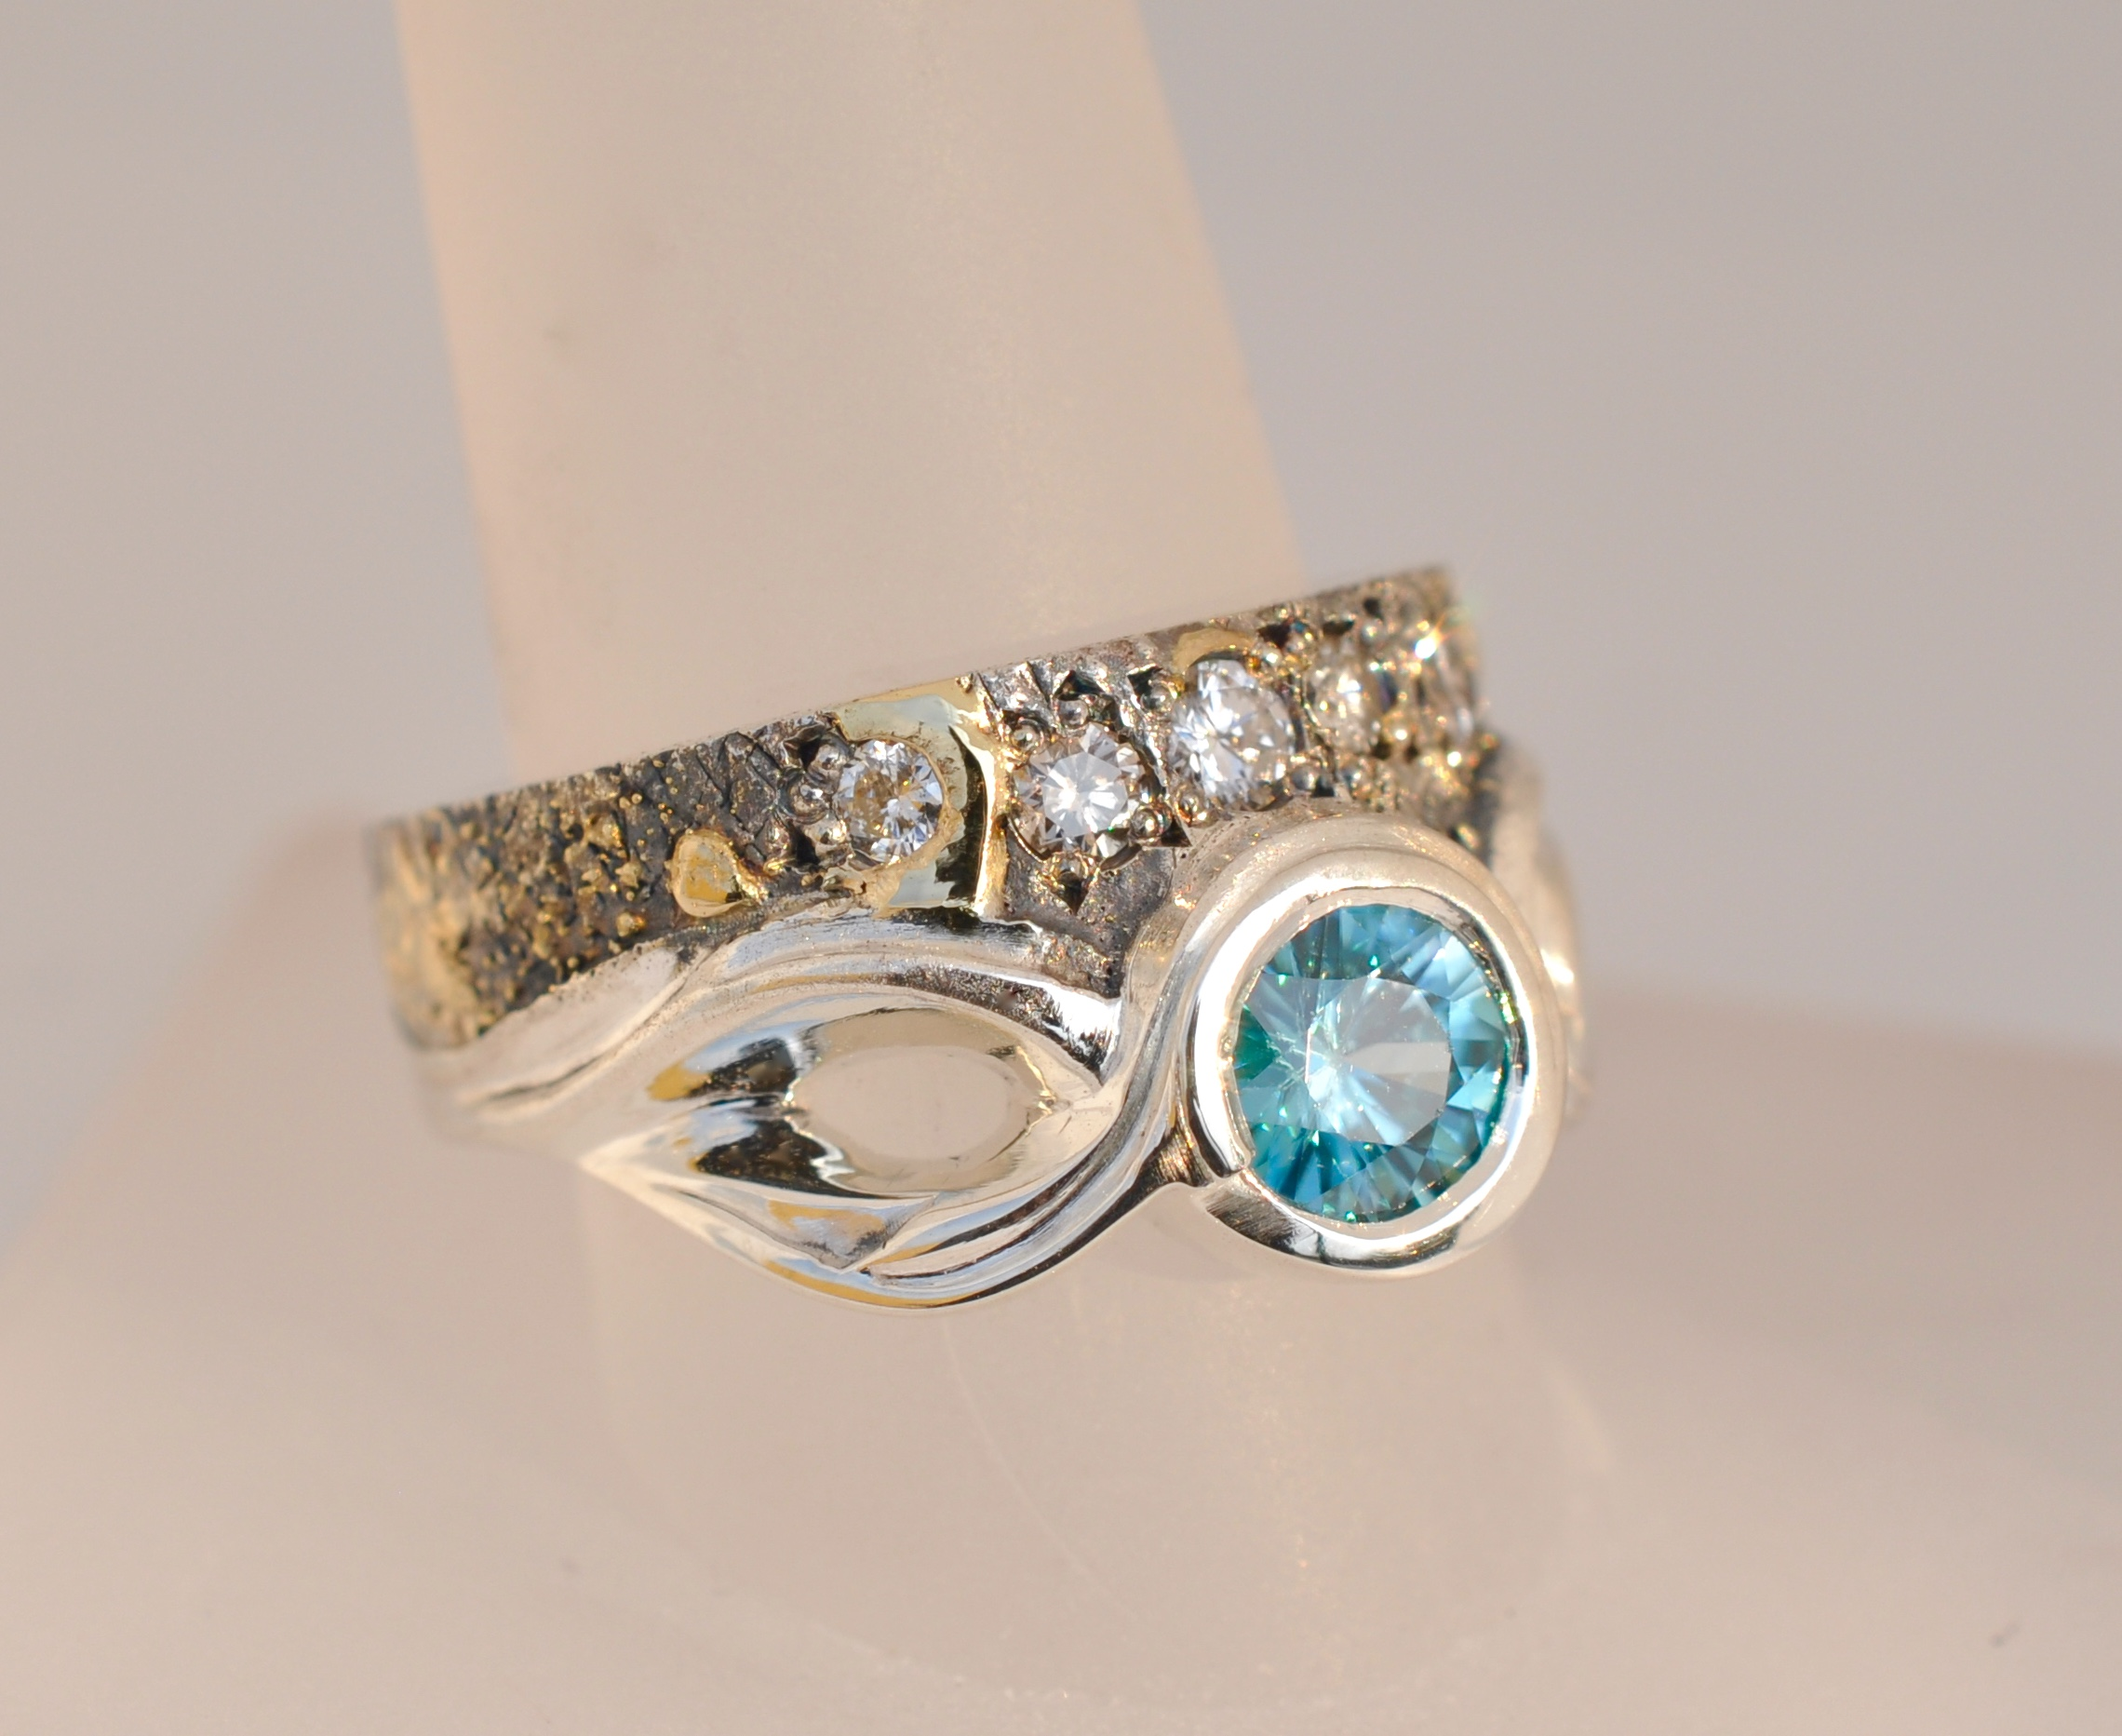 A 1.25 carat Blue Zircon is the center of attention with compliments of .45 cttw. of round brilliant diamonds, making this sculpted fusion ring a statement piece for those of a particular fashion persuasion.